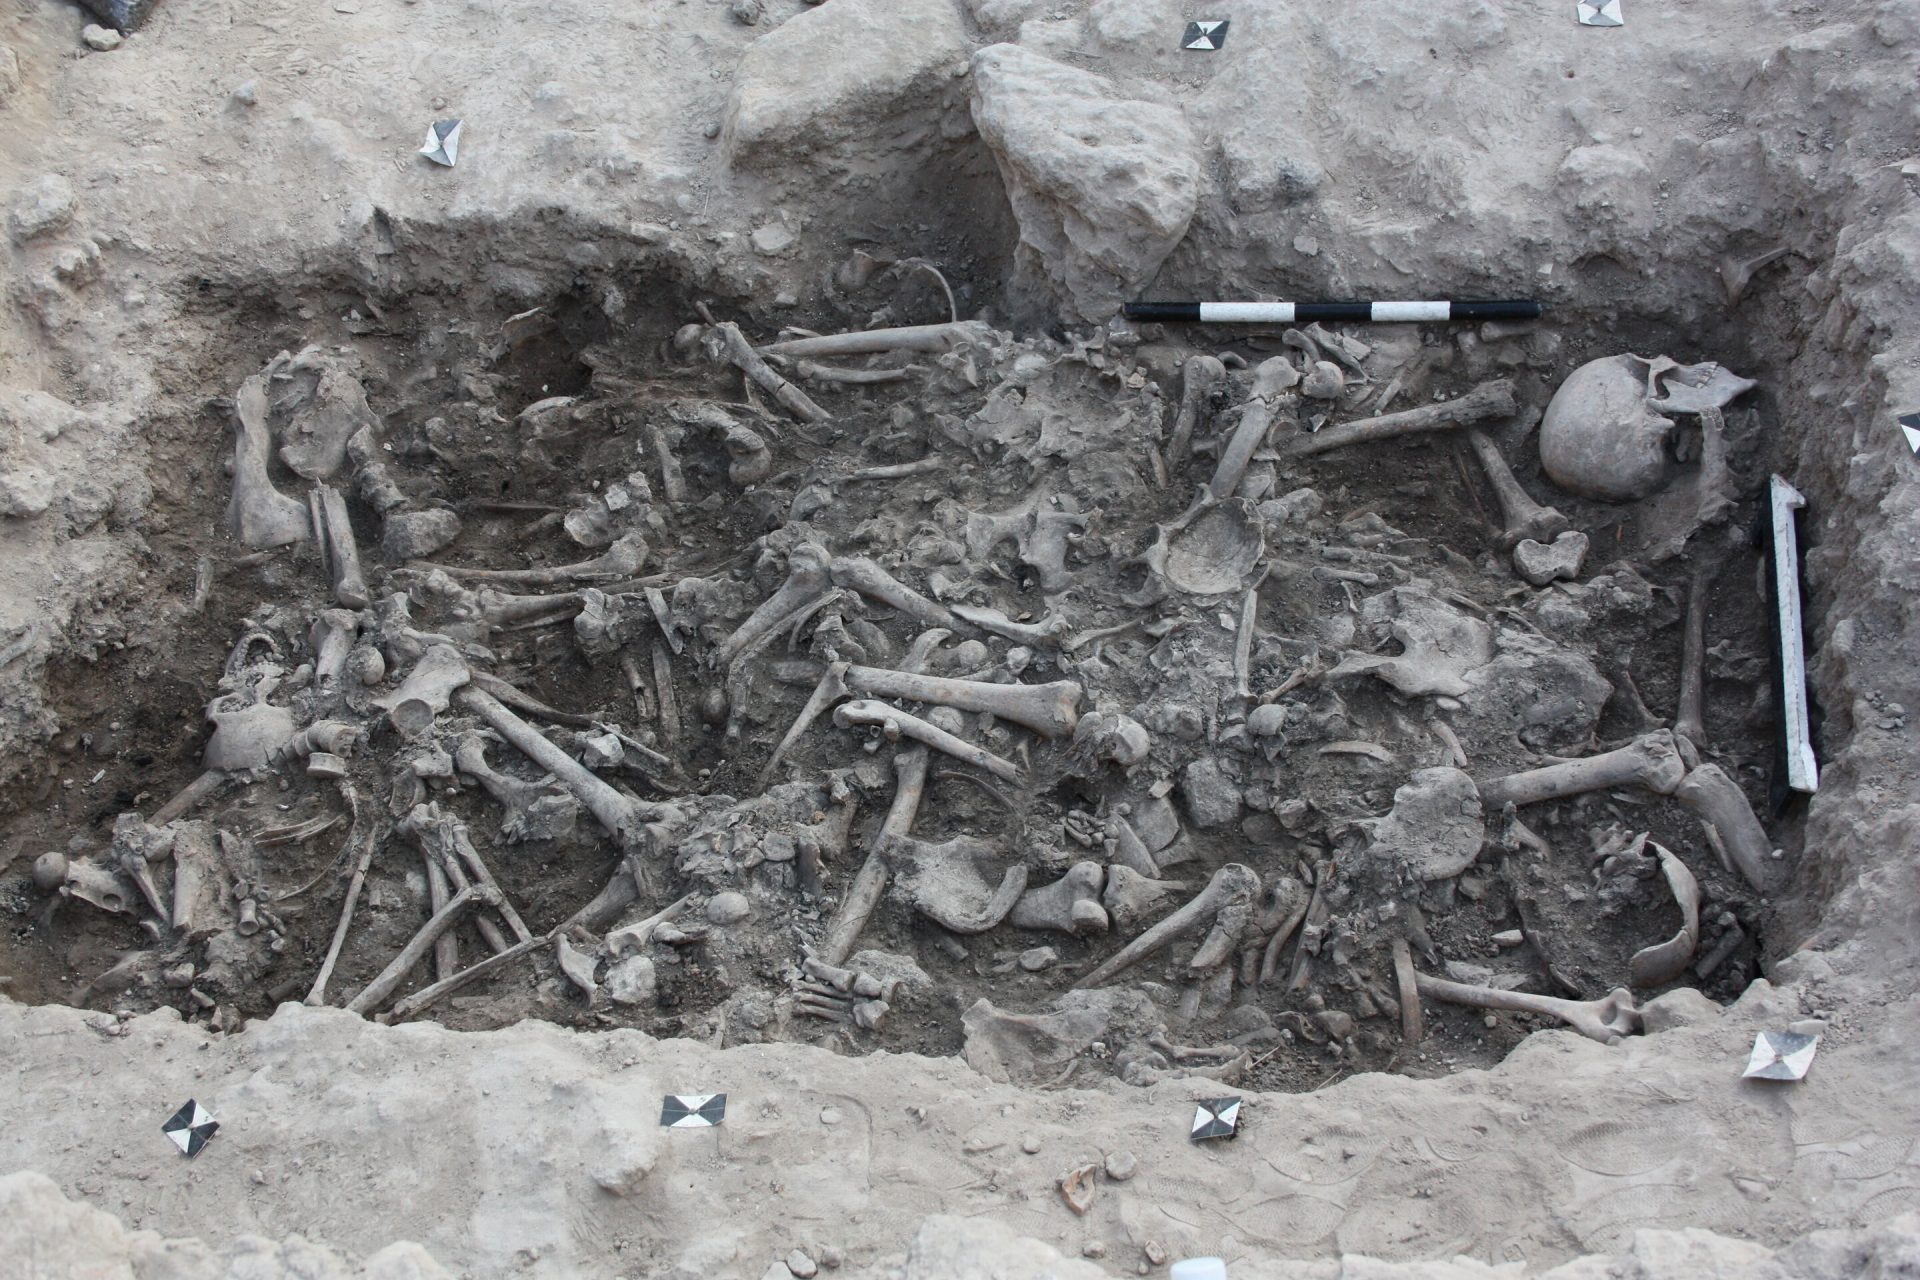 This image shows the bones of the Crusaders found in a burial pit in Sidon, Lebanon. (Image: Claude Doumet-Serhal)